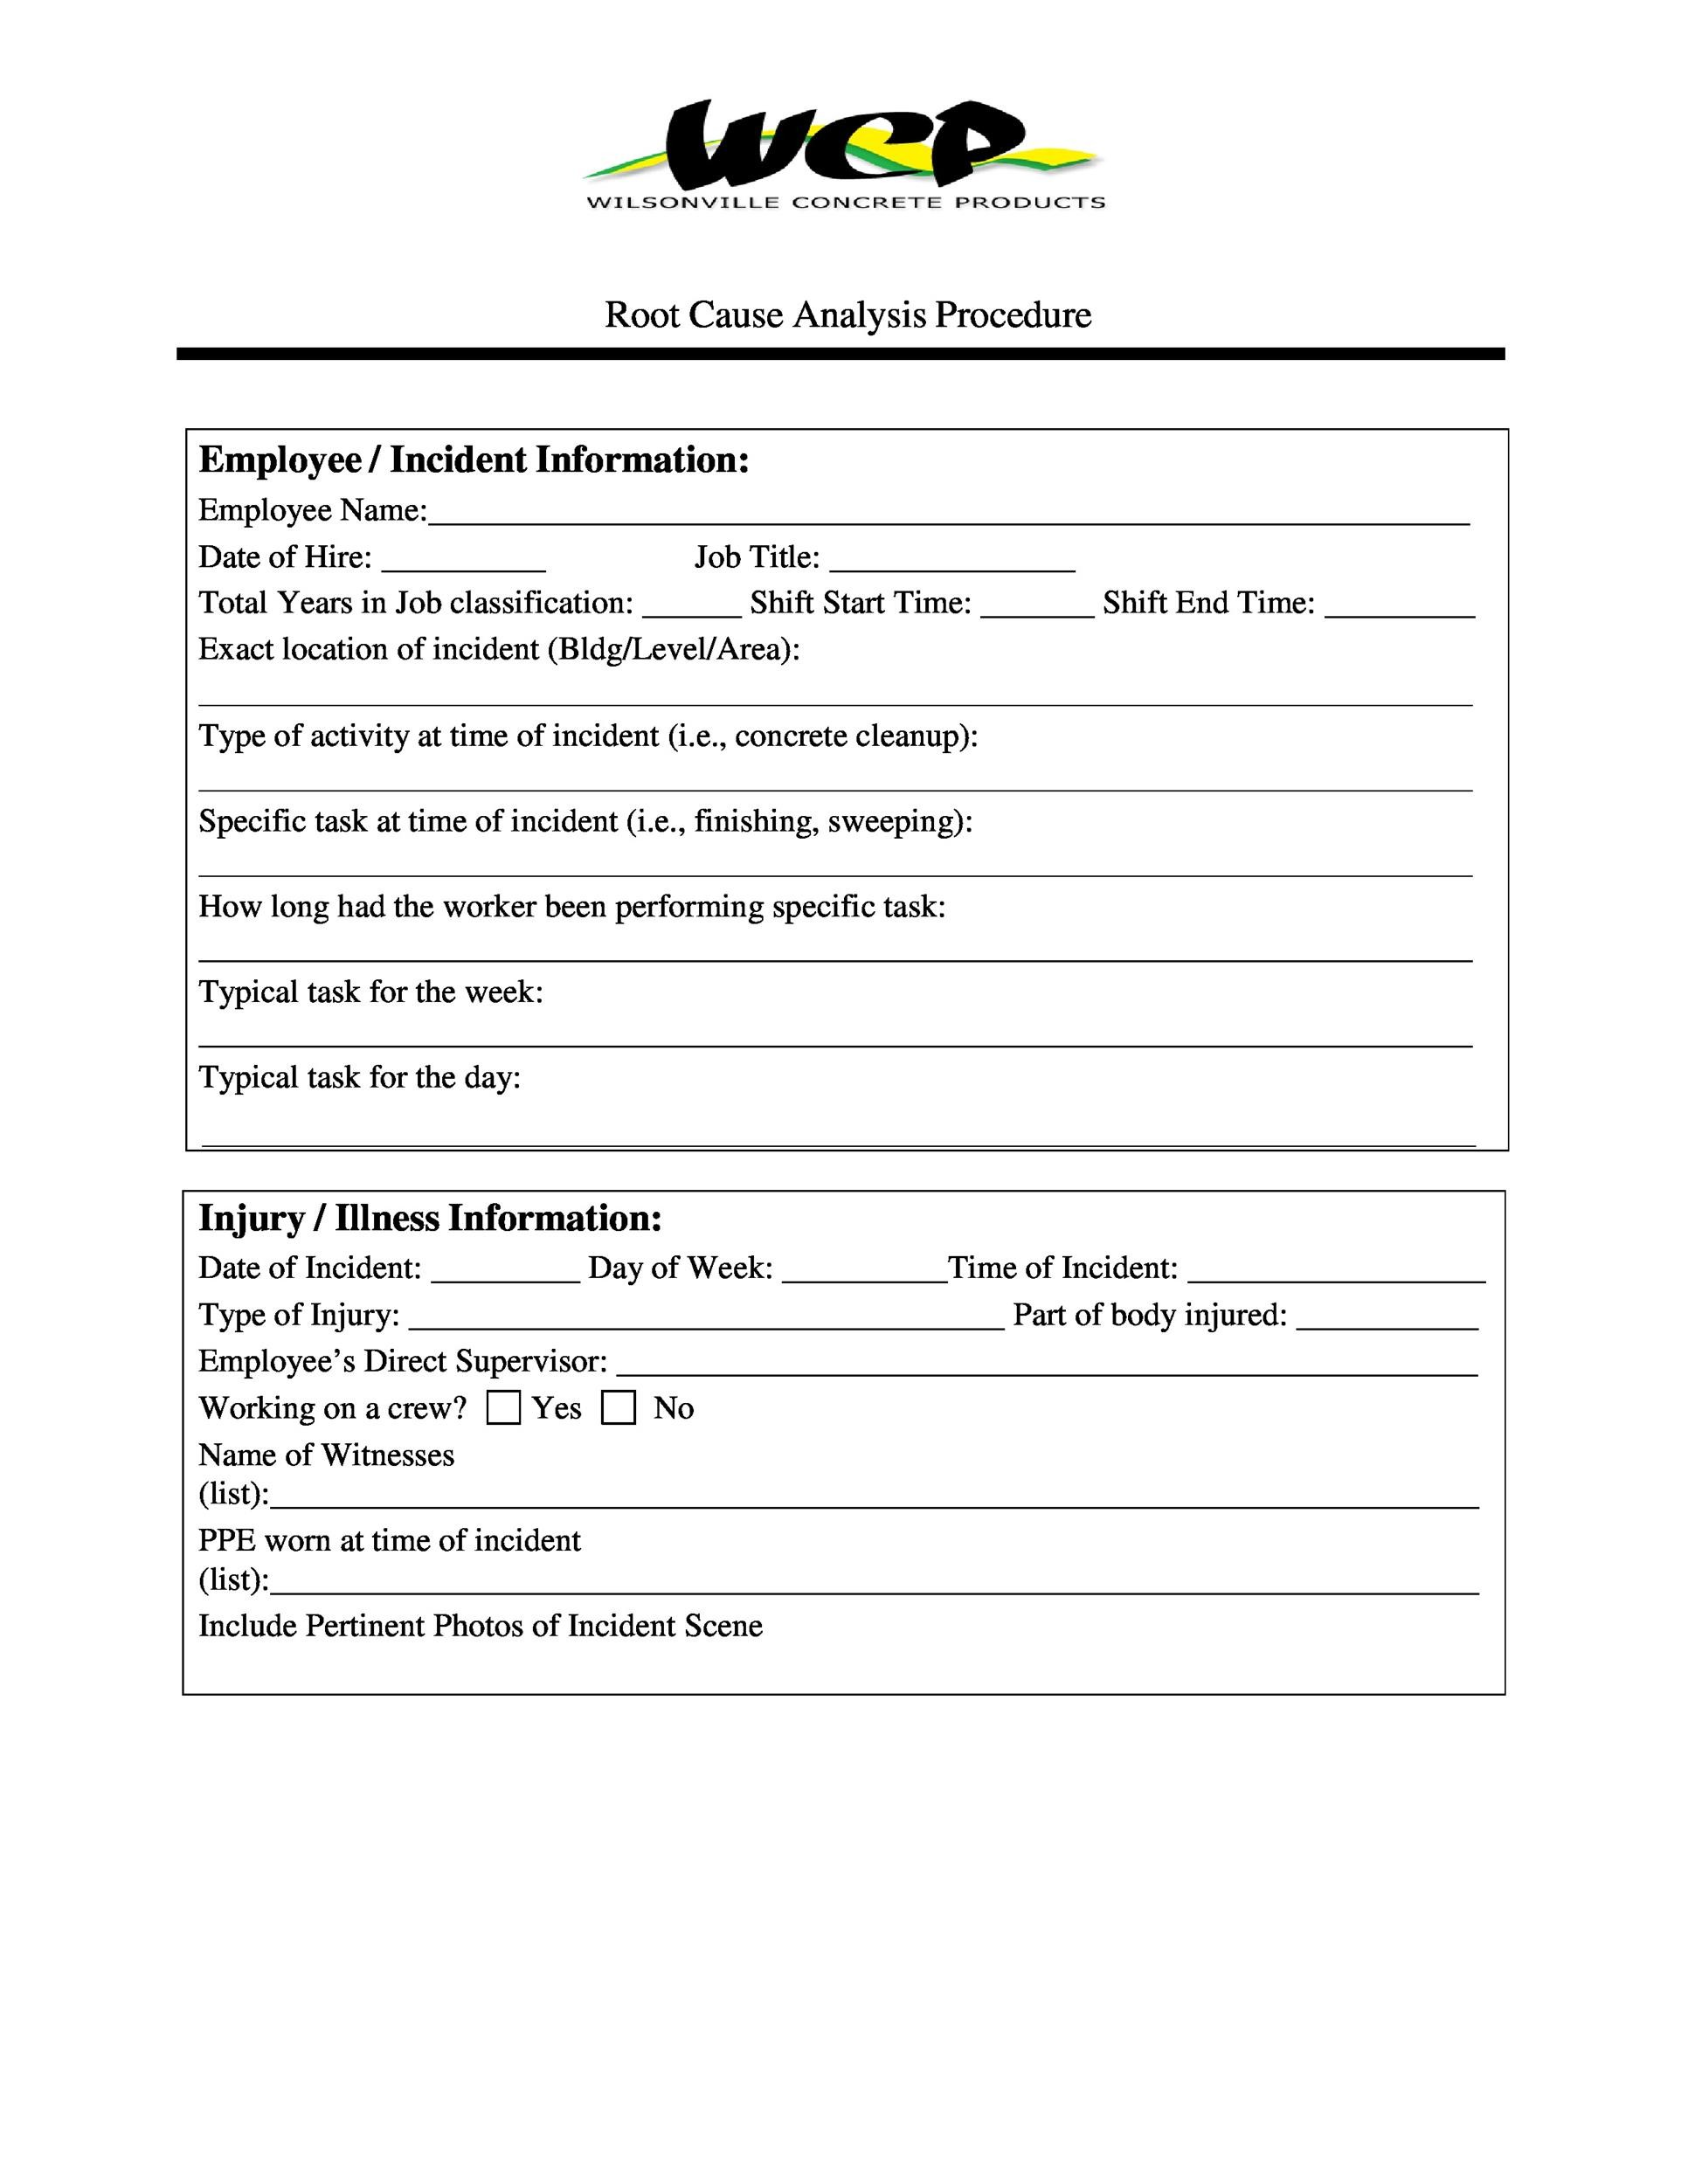 Free Root Cause Analysis Template 41